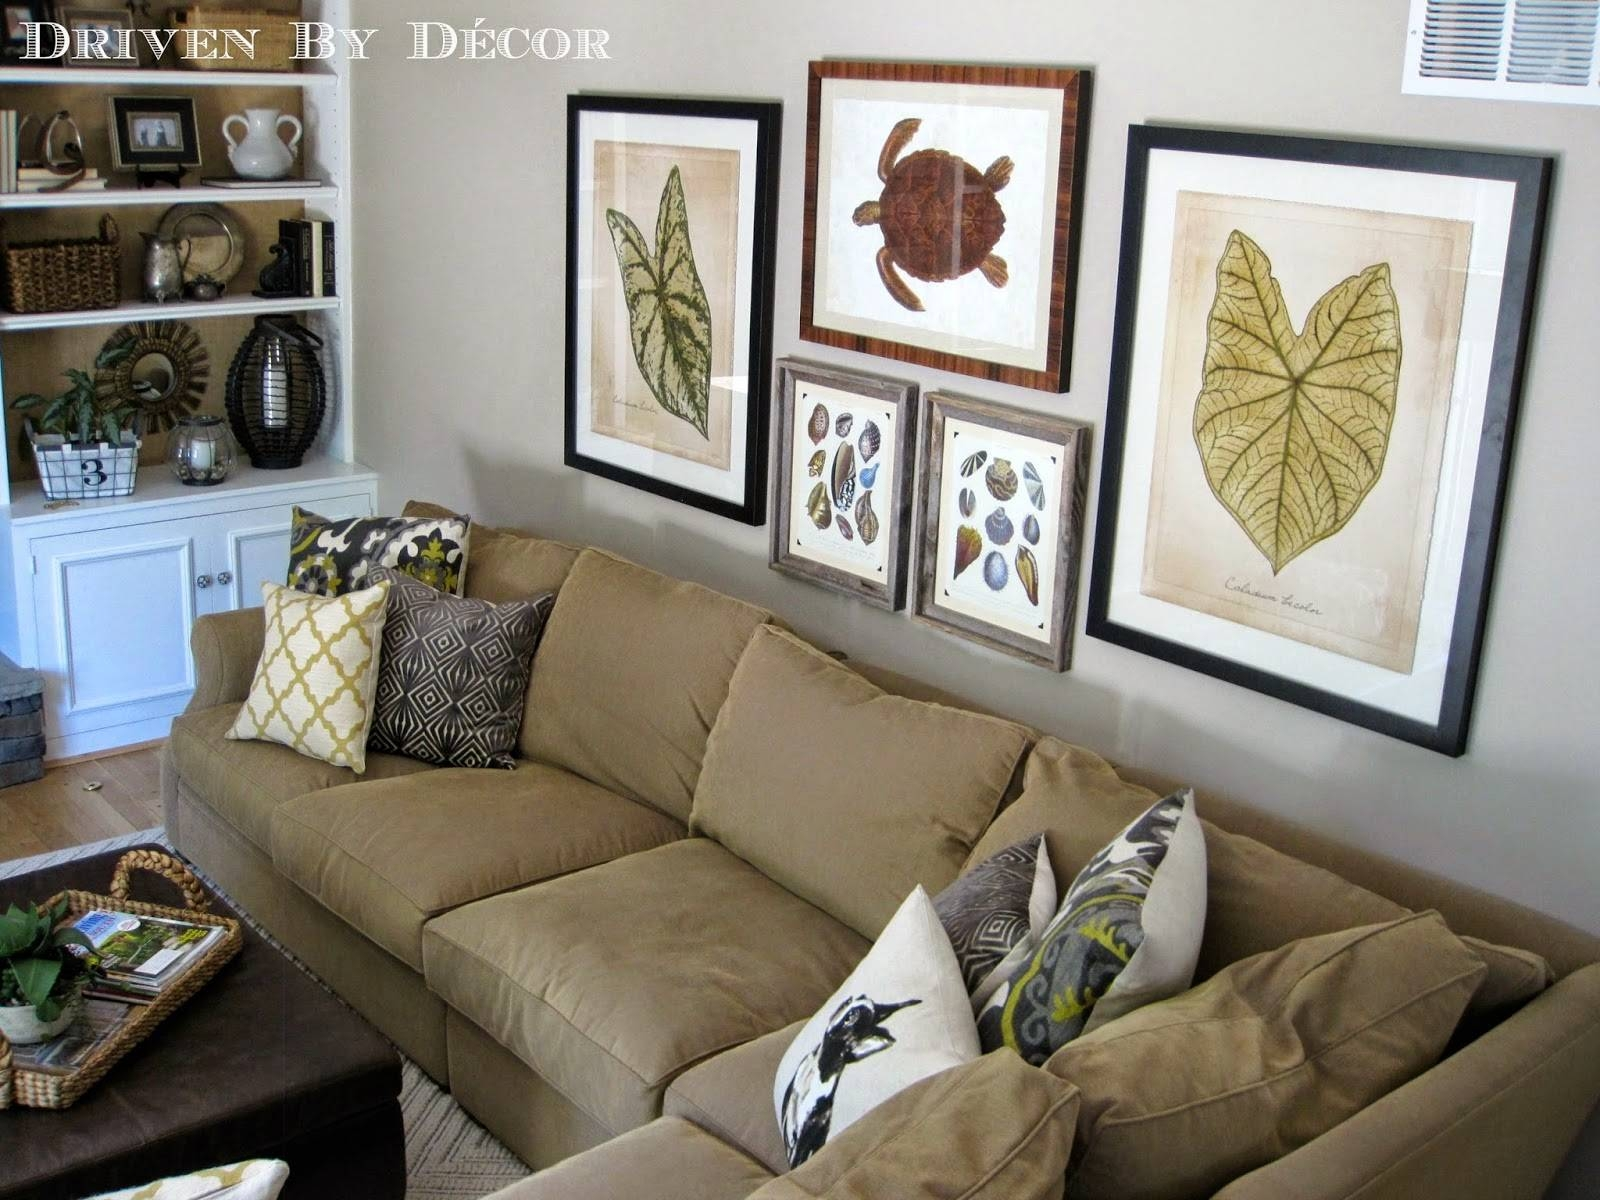 House Tour: Family Room | Drivendecor Throughout Most Up To Date Wall Art Decor For Family Room (View 13 of 20)